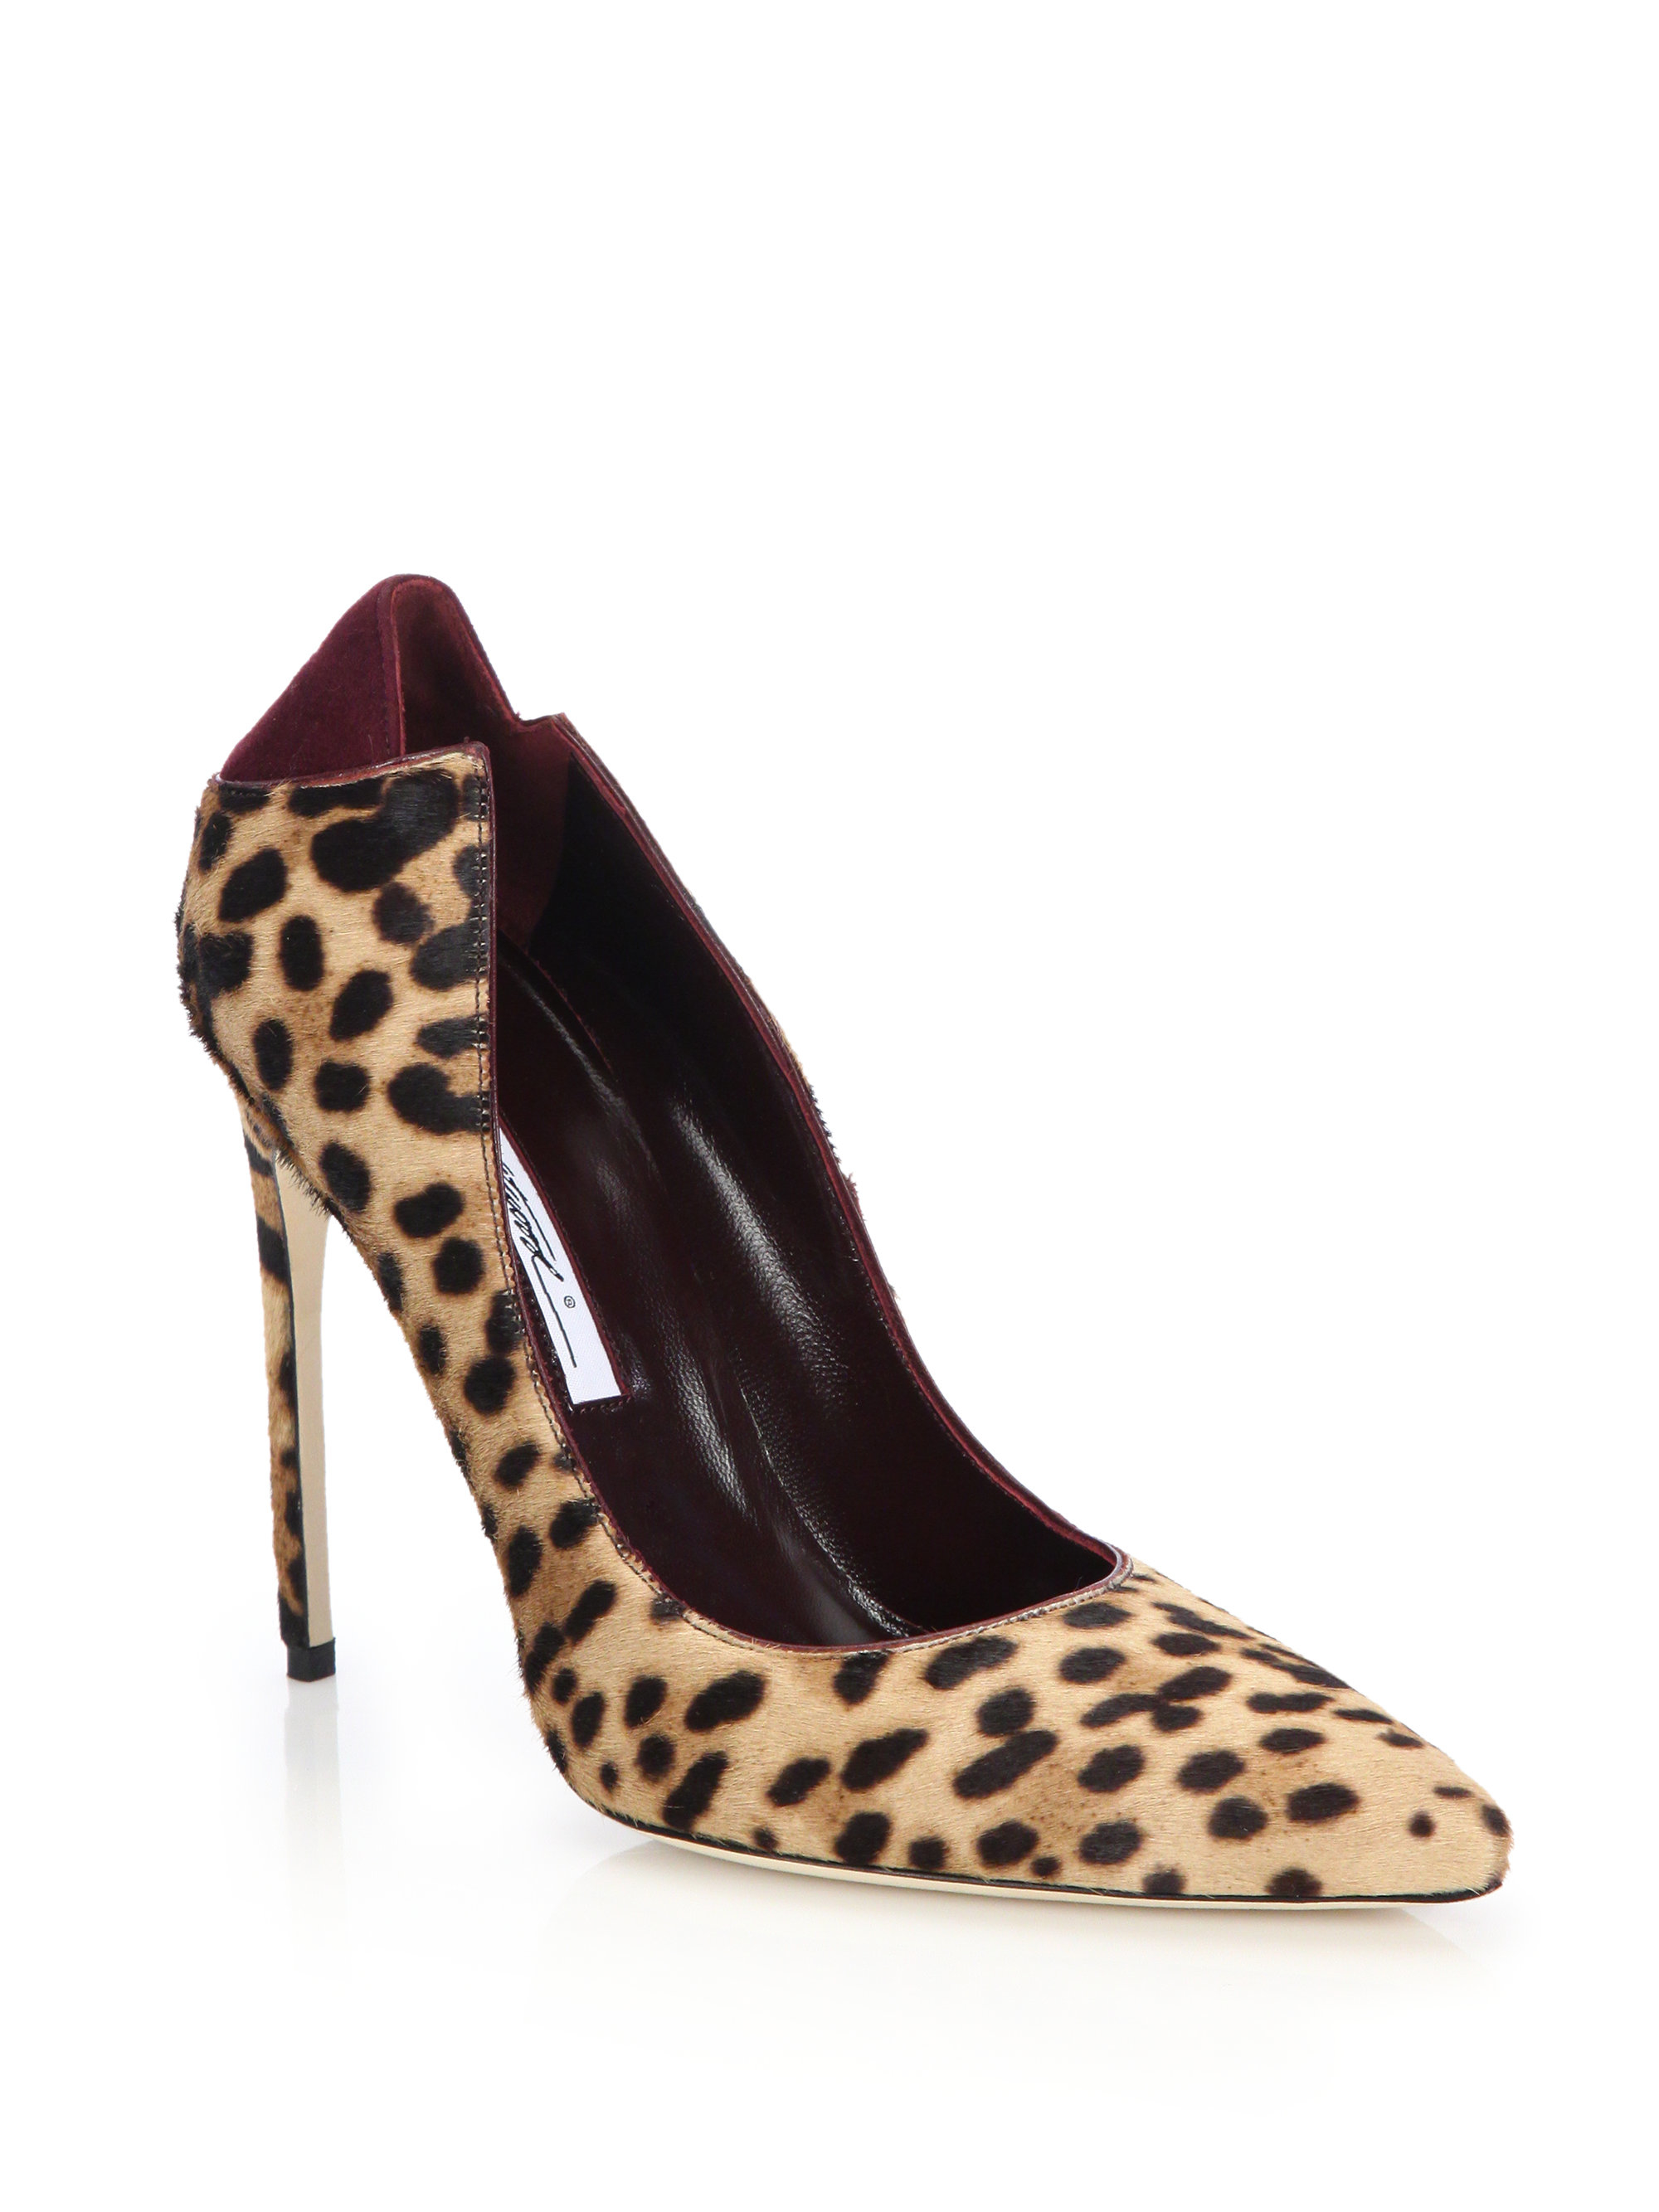 Brian Atwood Women S Shoes